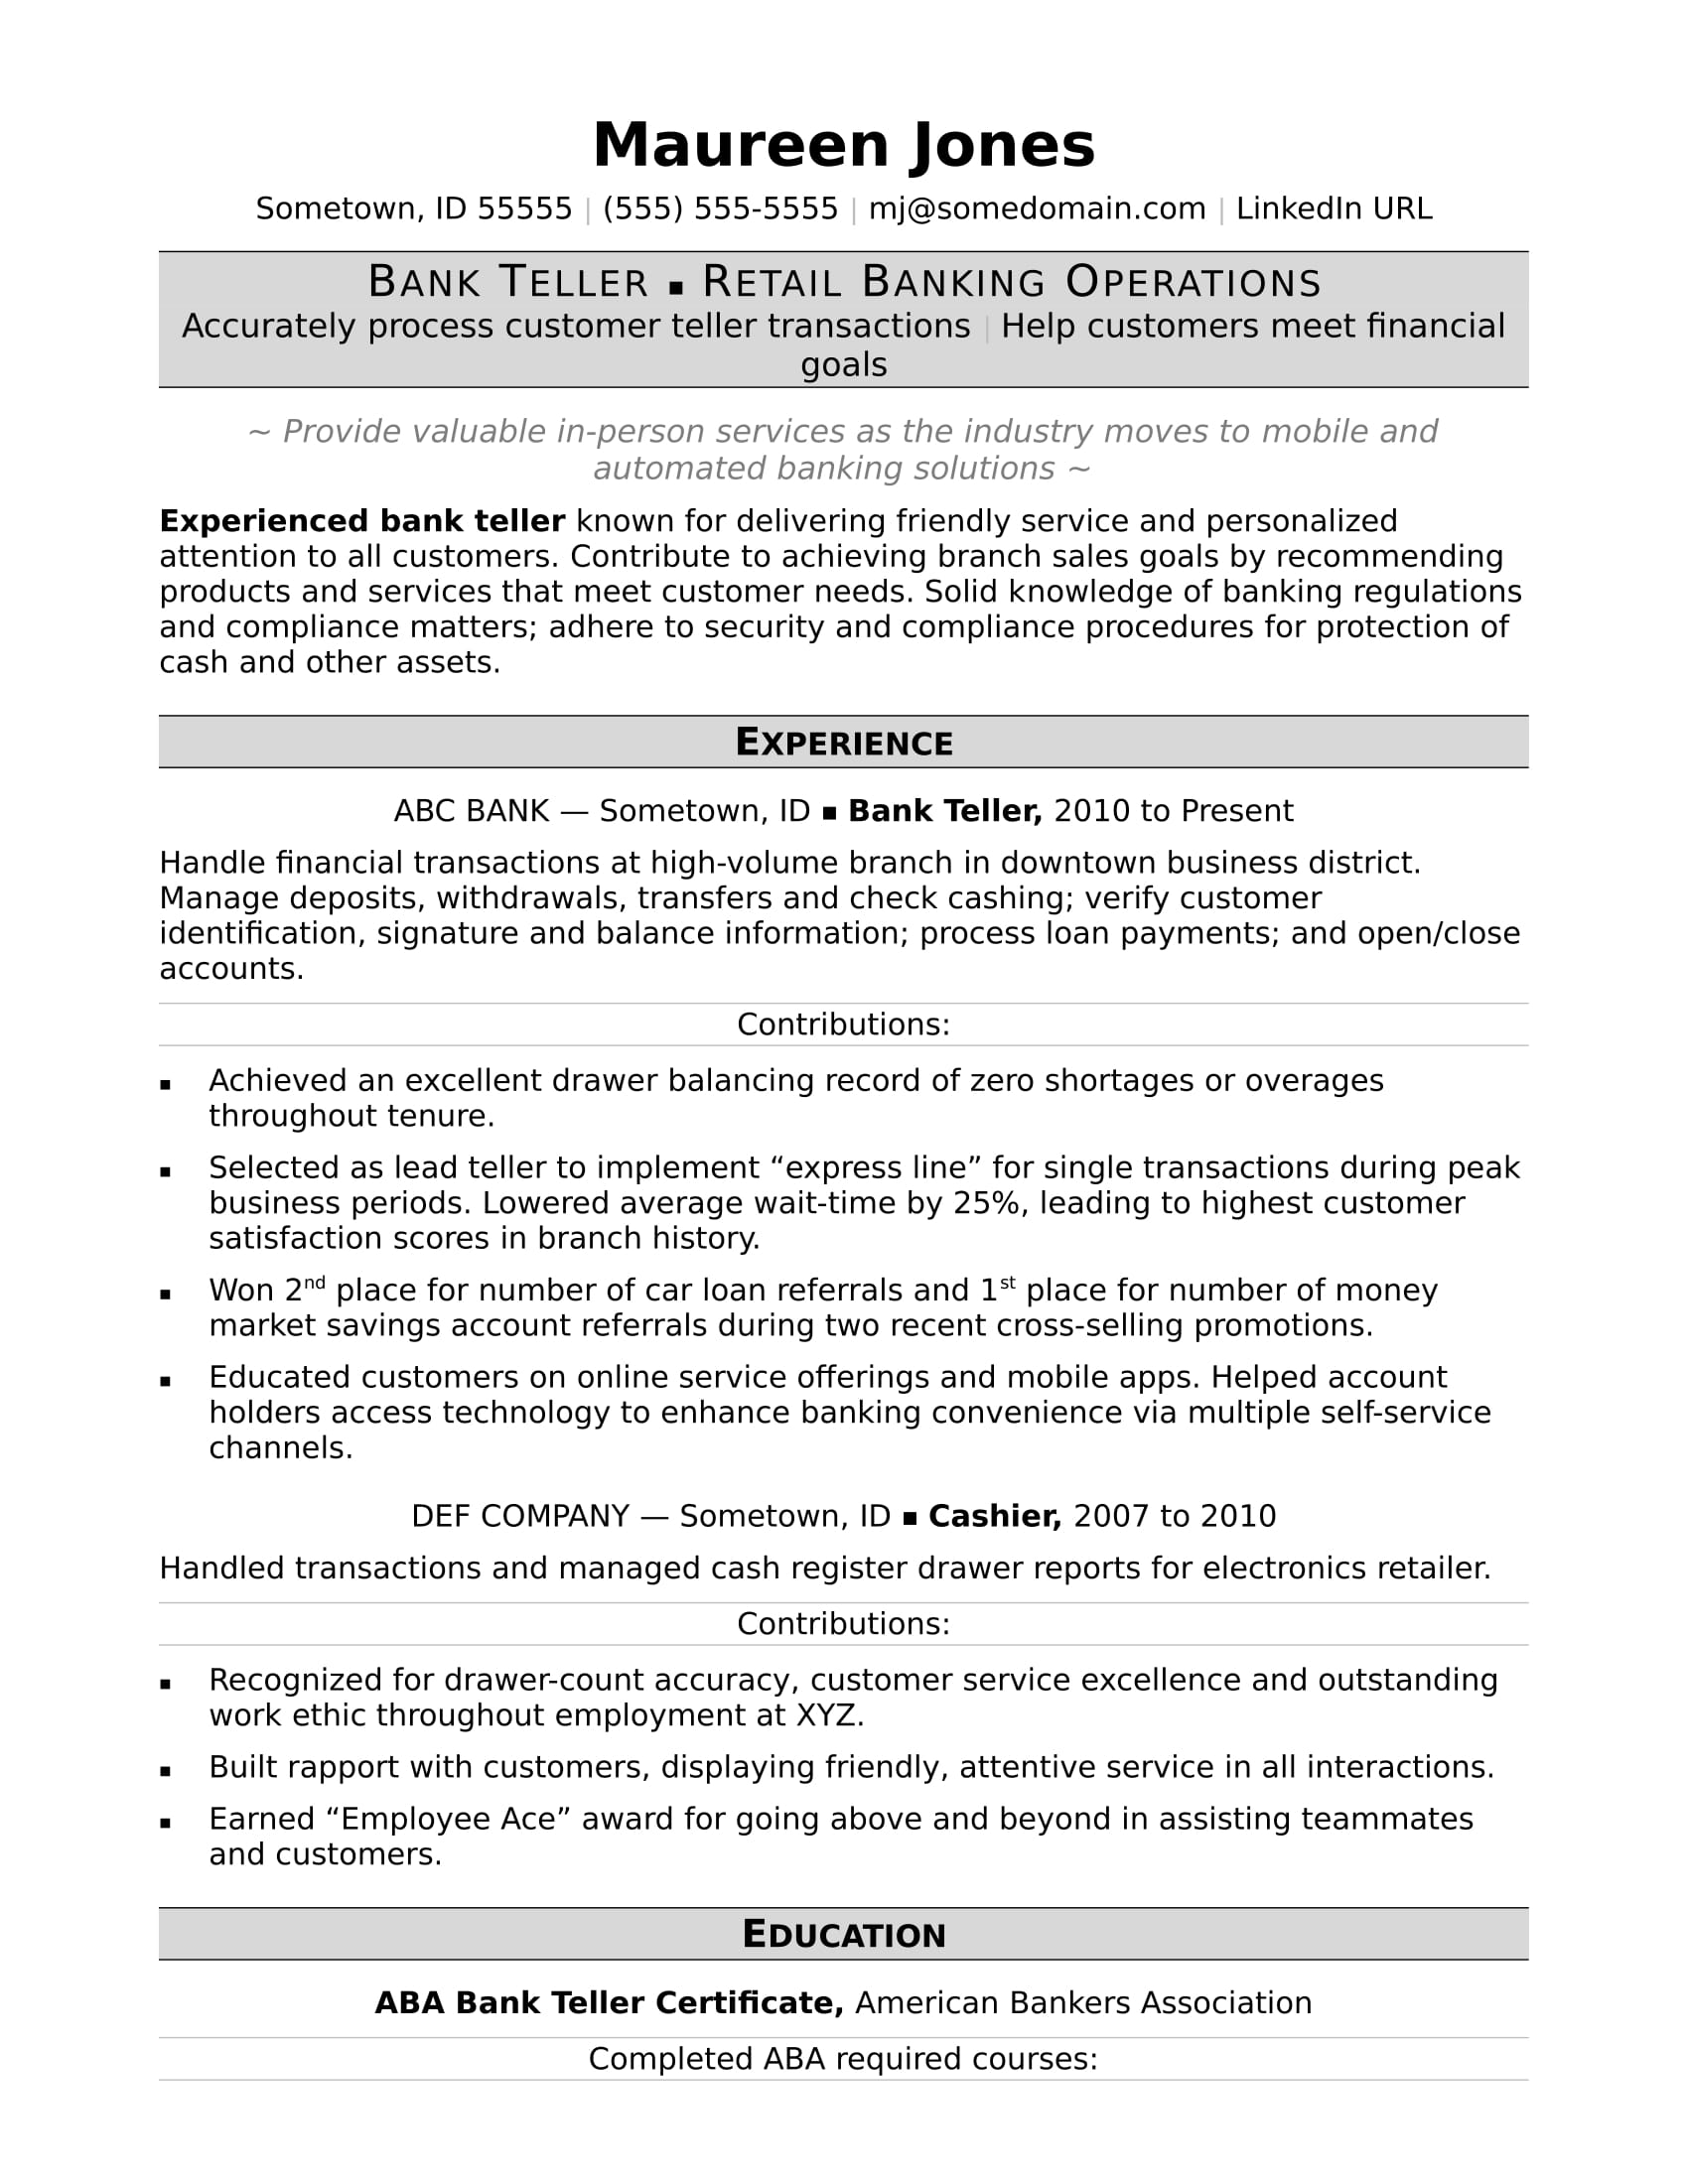 bank resume sample monster with experience bankteller affordable service reviews Resume Bank Teller Resume Sample With Experience